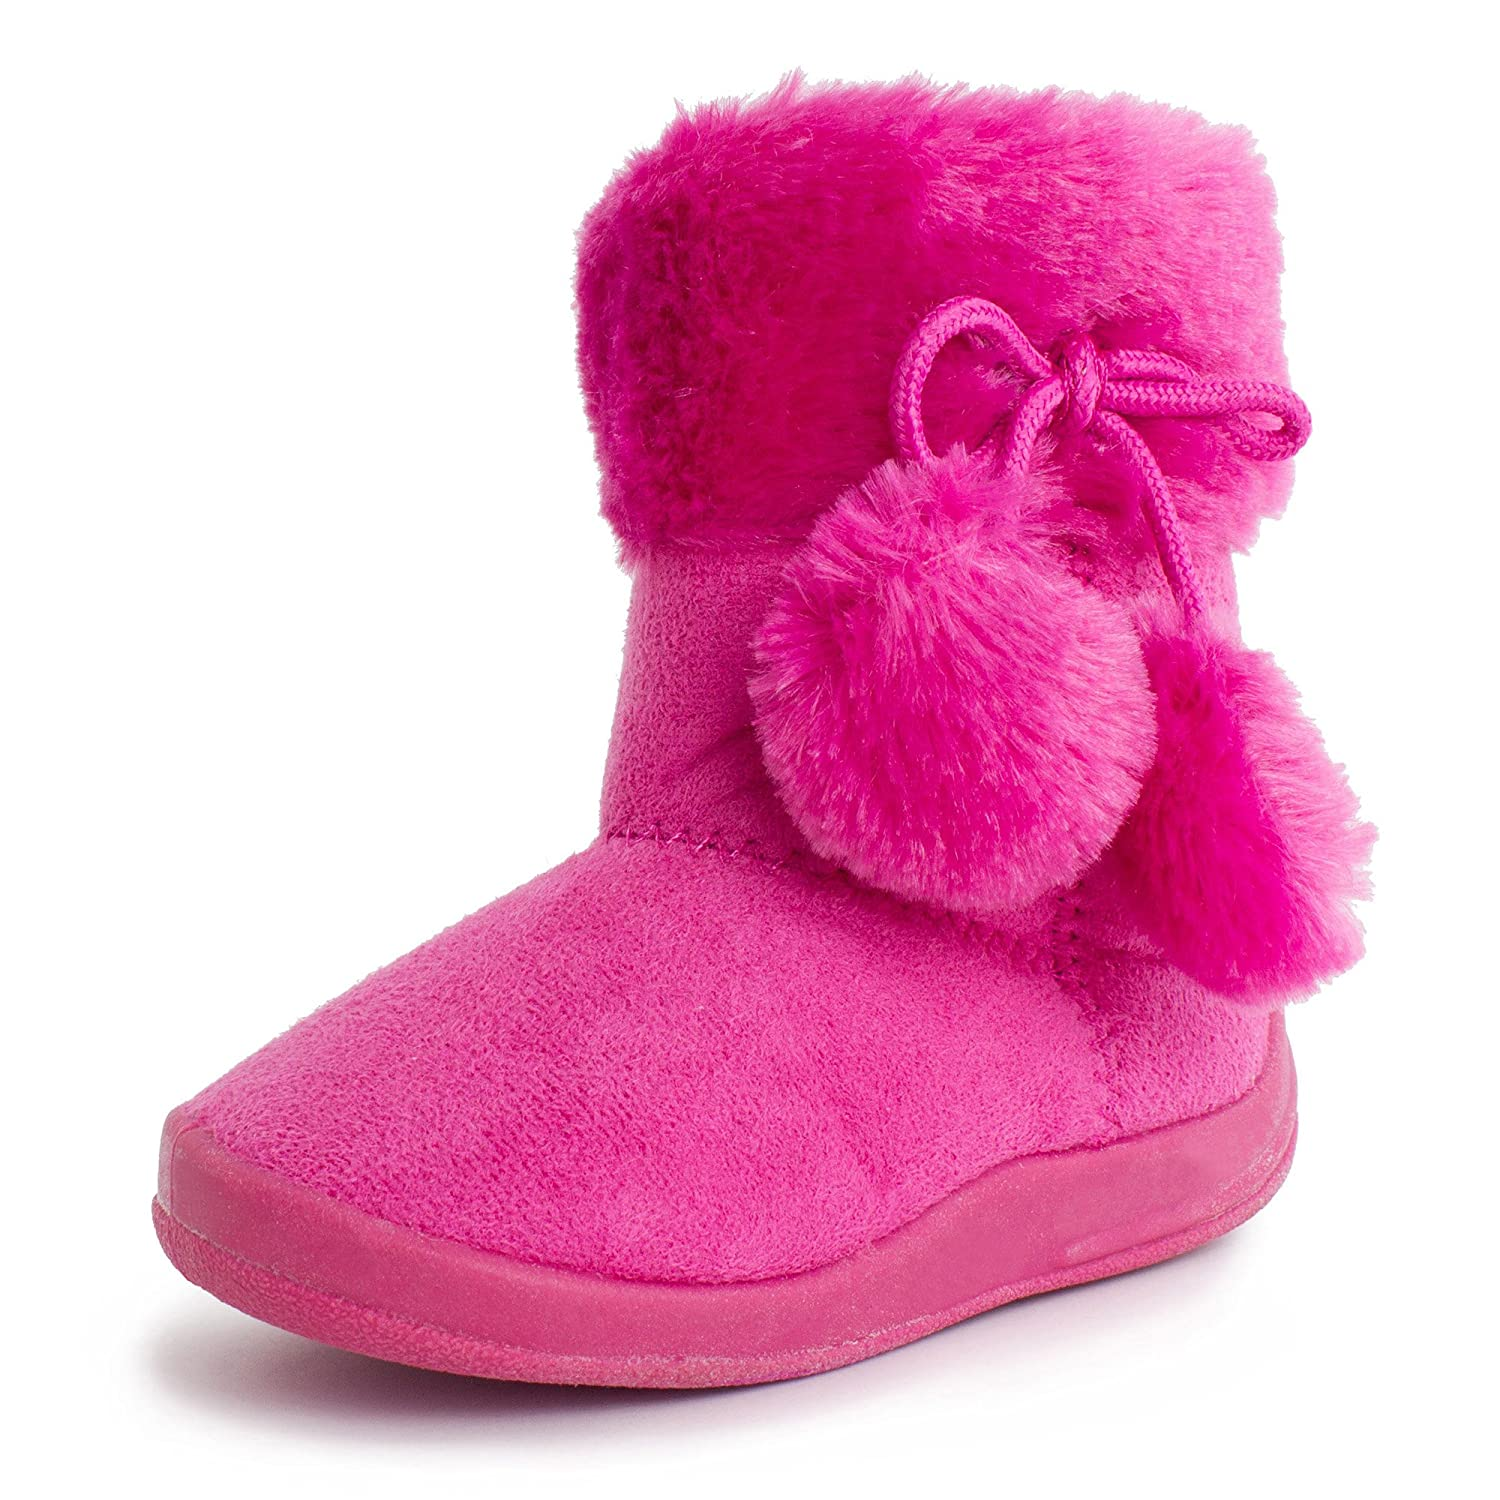 Kali Basic Comf Boots (Toddler/Little Kid) B00K8AD3UG 7 M US Toddler|Hot Pink